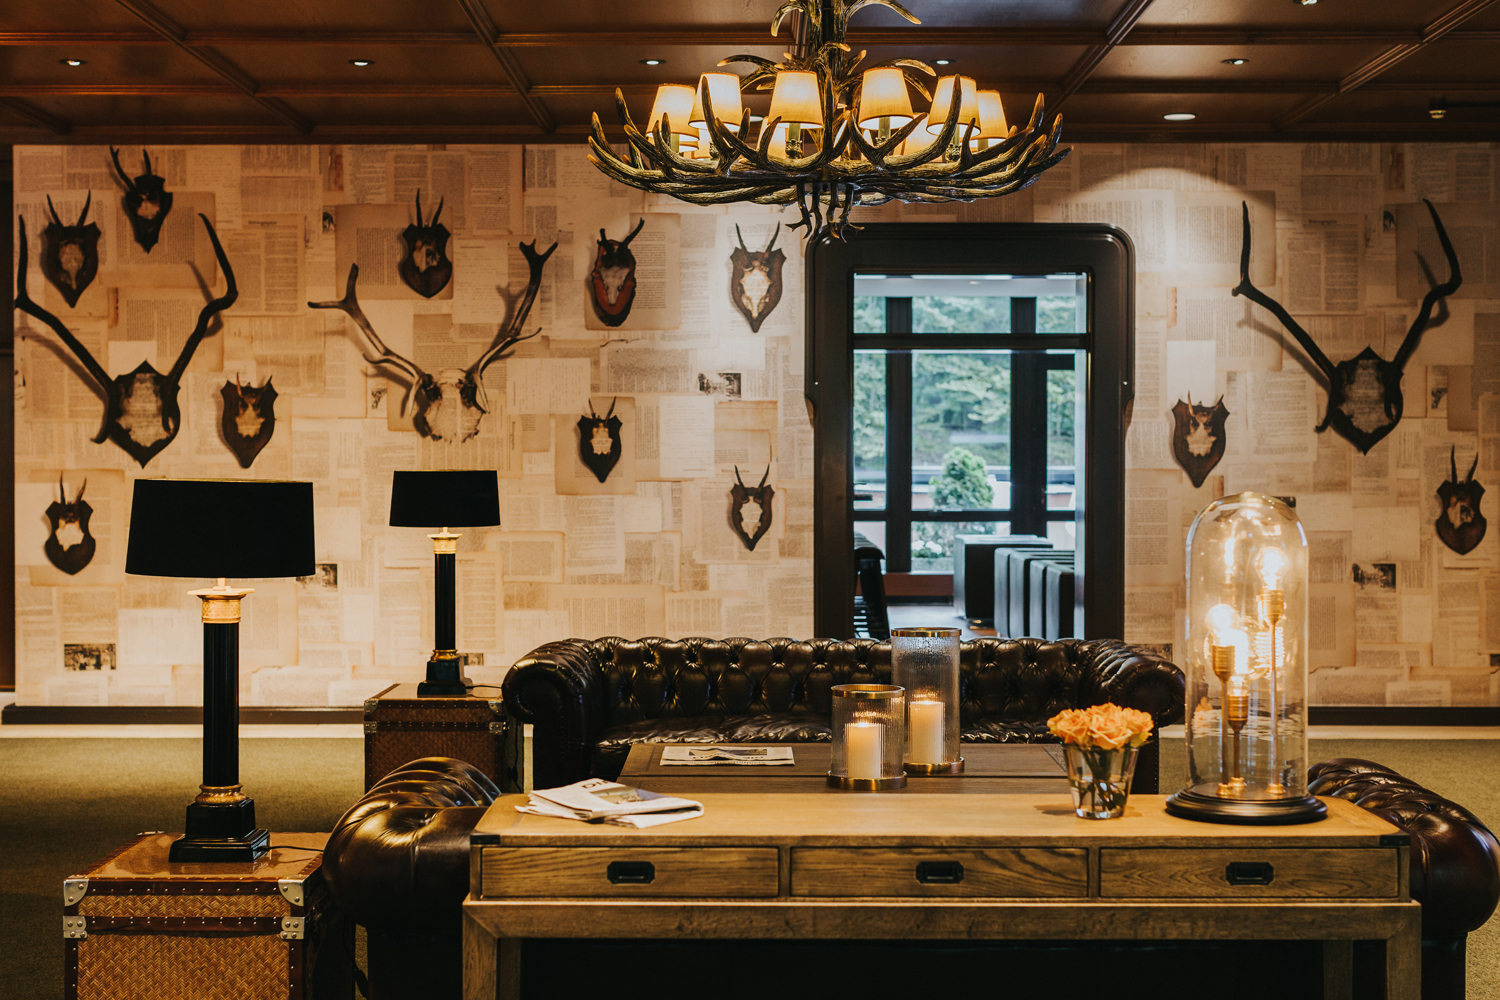 Hotel_Forsthaus_Nuernberg_Lobby_Antlers